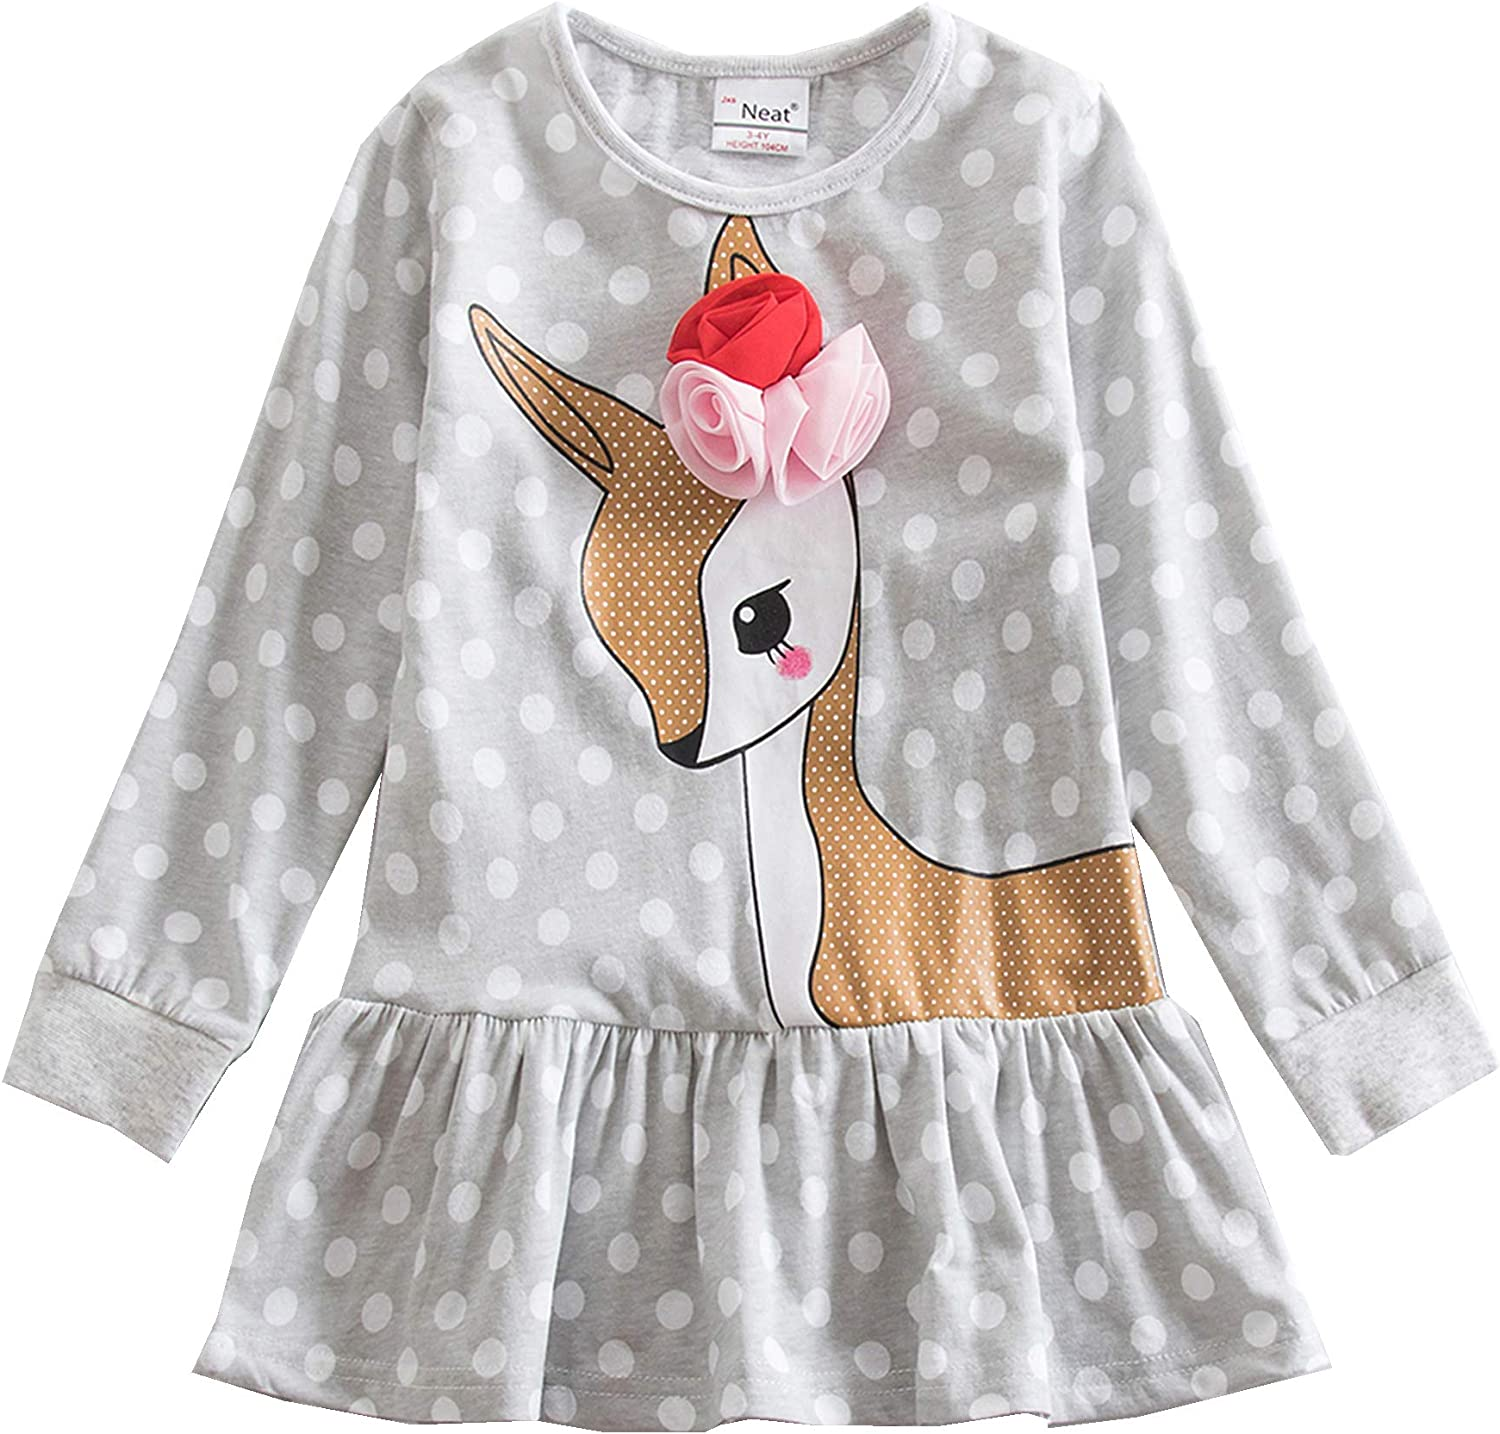 Kids Girls Long Sleeve Dress Party Cartoon Cotton Princess Tutu Clothes Age 3-8